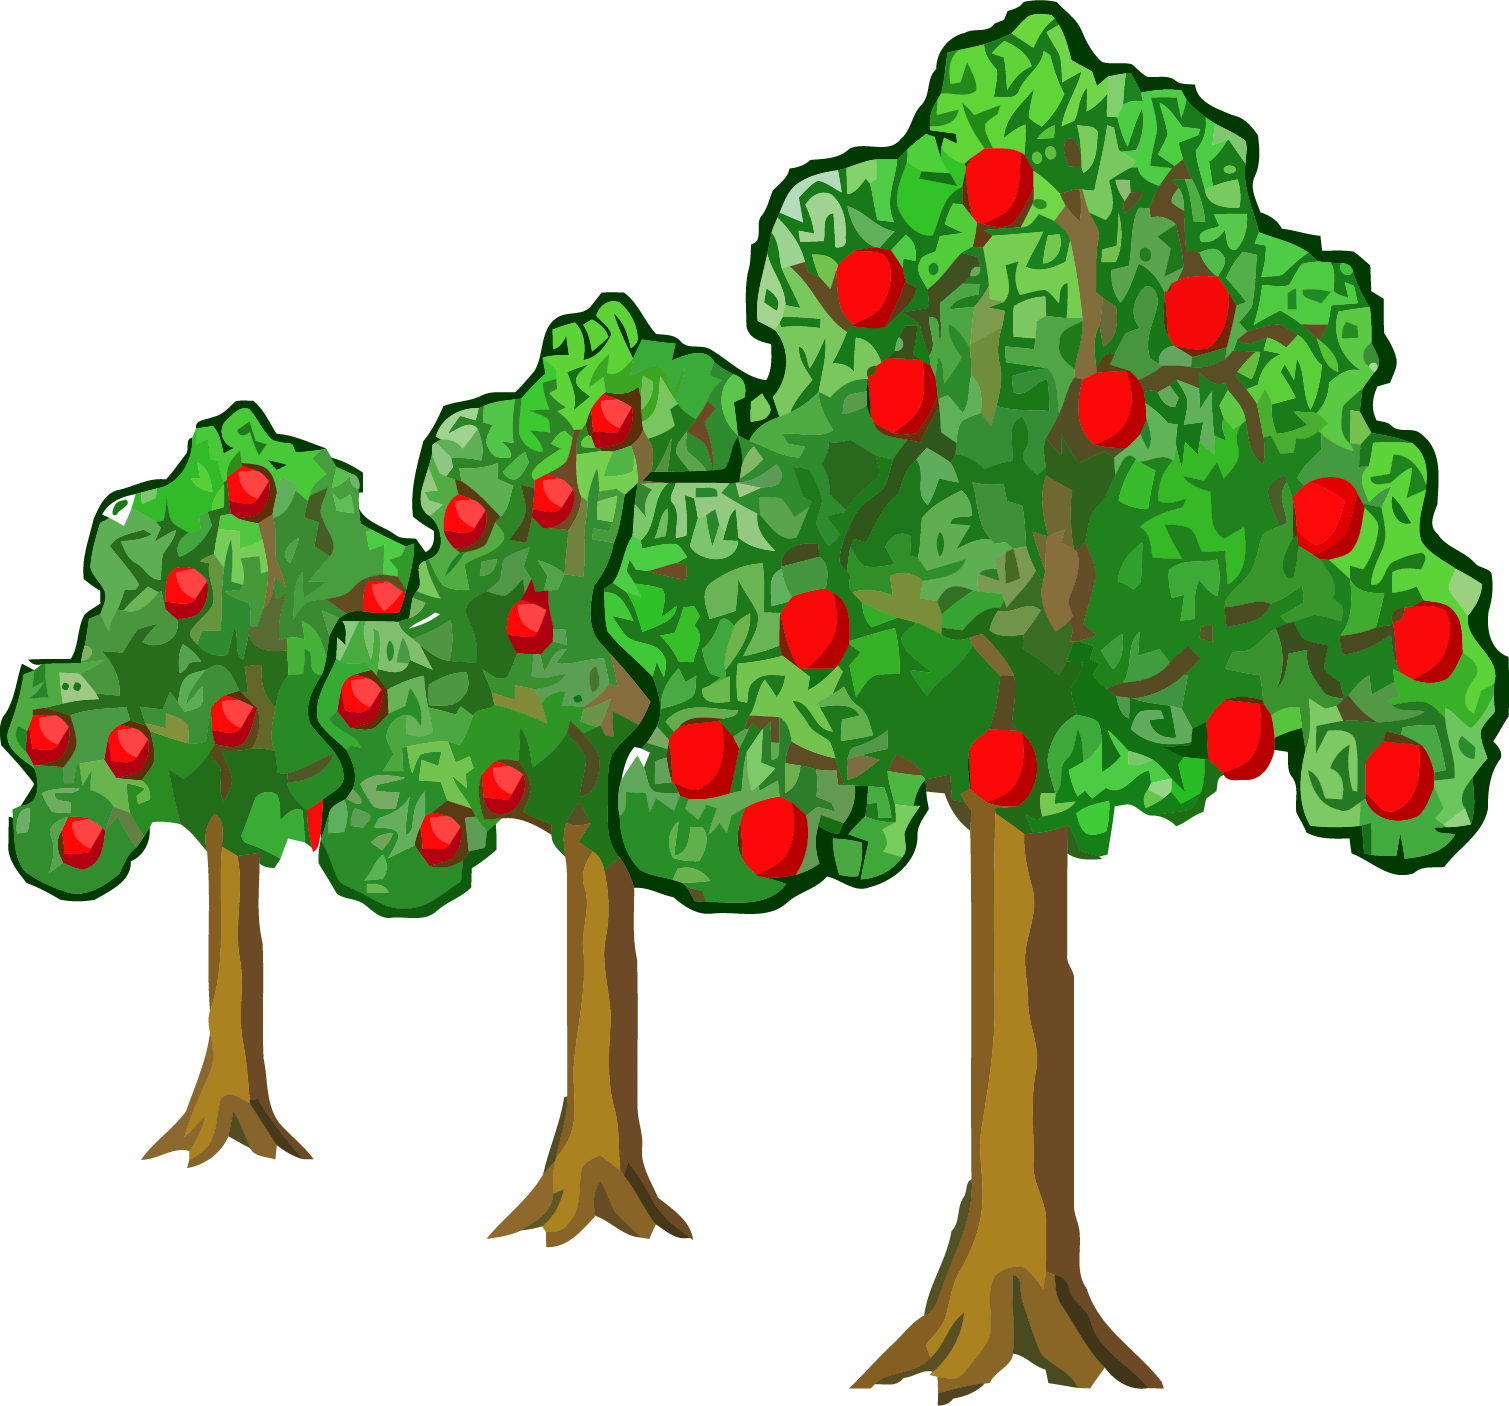 Fall apple trees clipart jpg black and white download Apple Tree Clipart at GetDrawings.com | Free for personal use Apple ... jpg black and white download